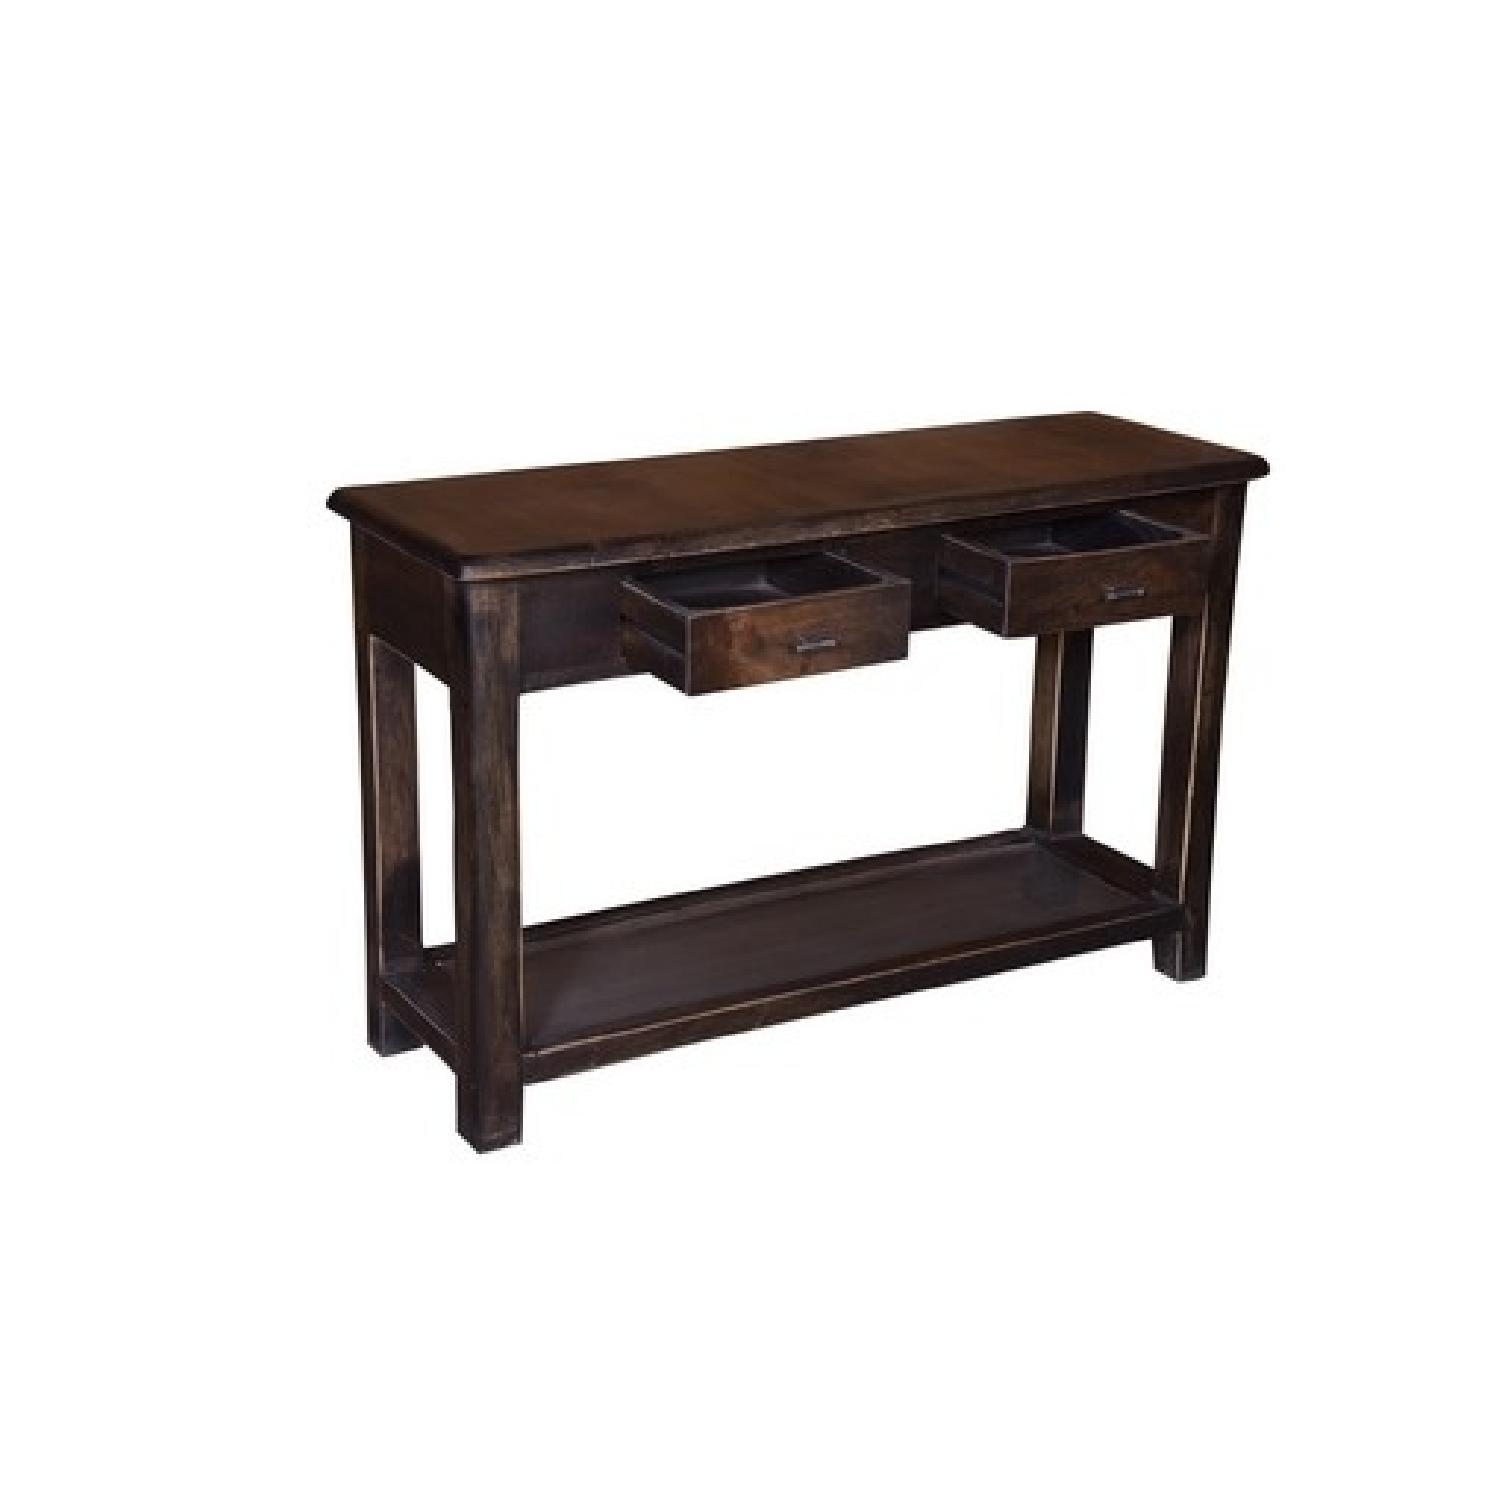 DesigneGallerie Platt Console Table